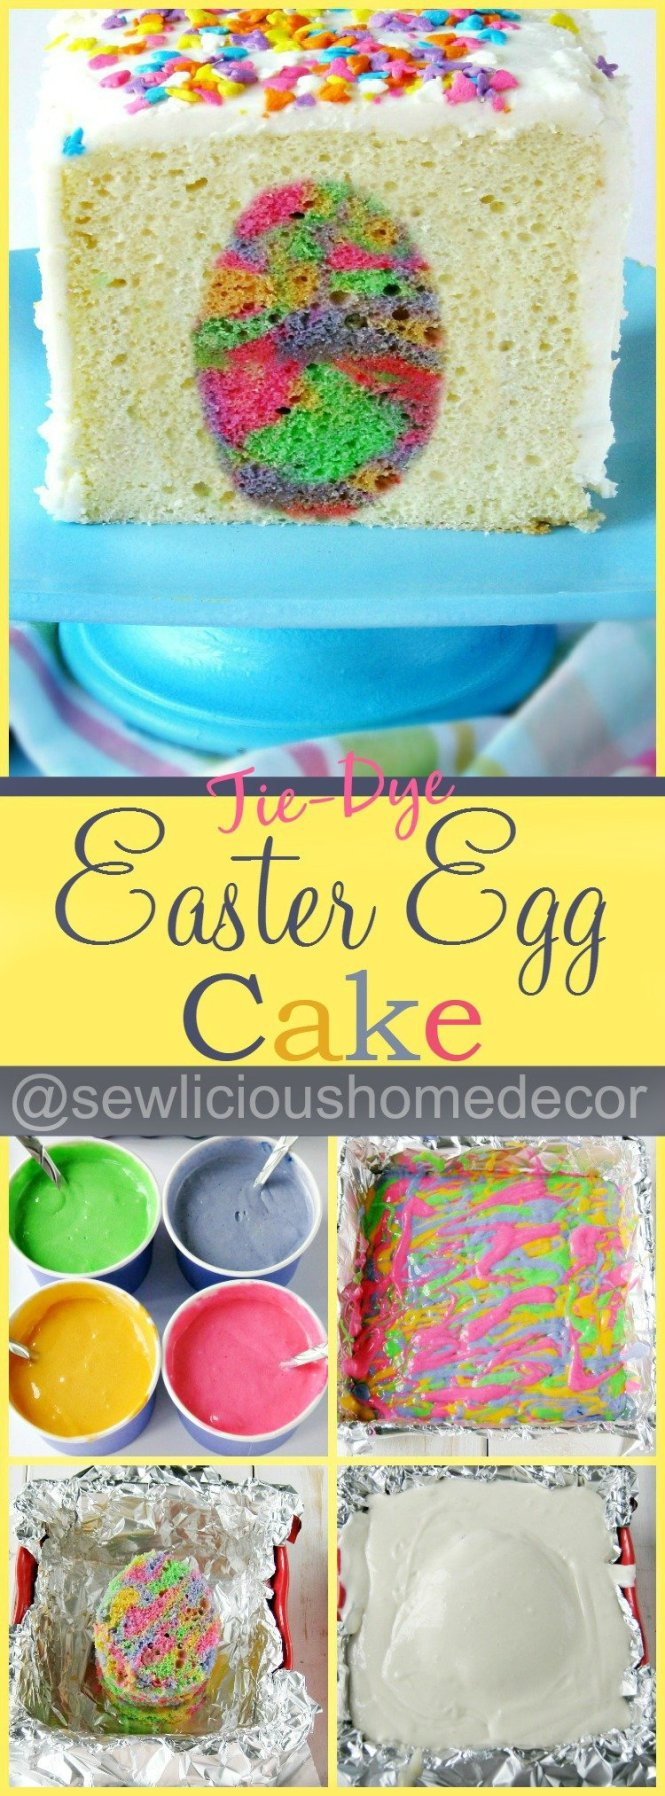 Easter Egg Cake Tie Dye at sewlicioushomedecor.com